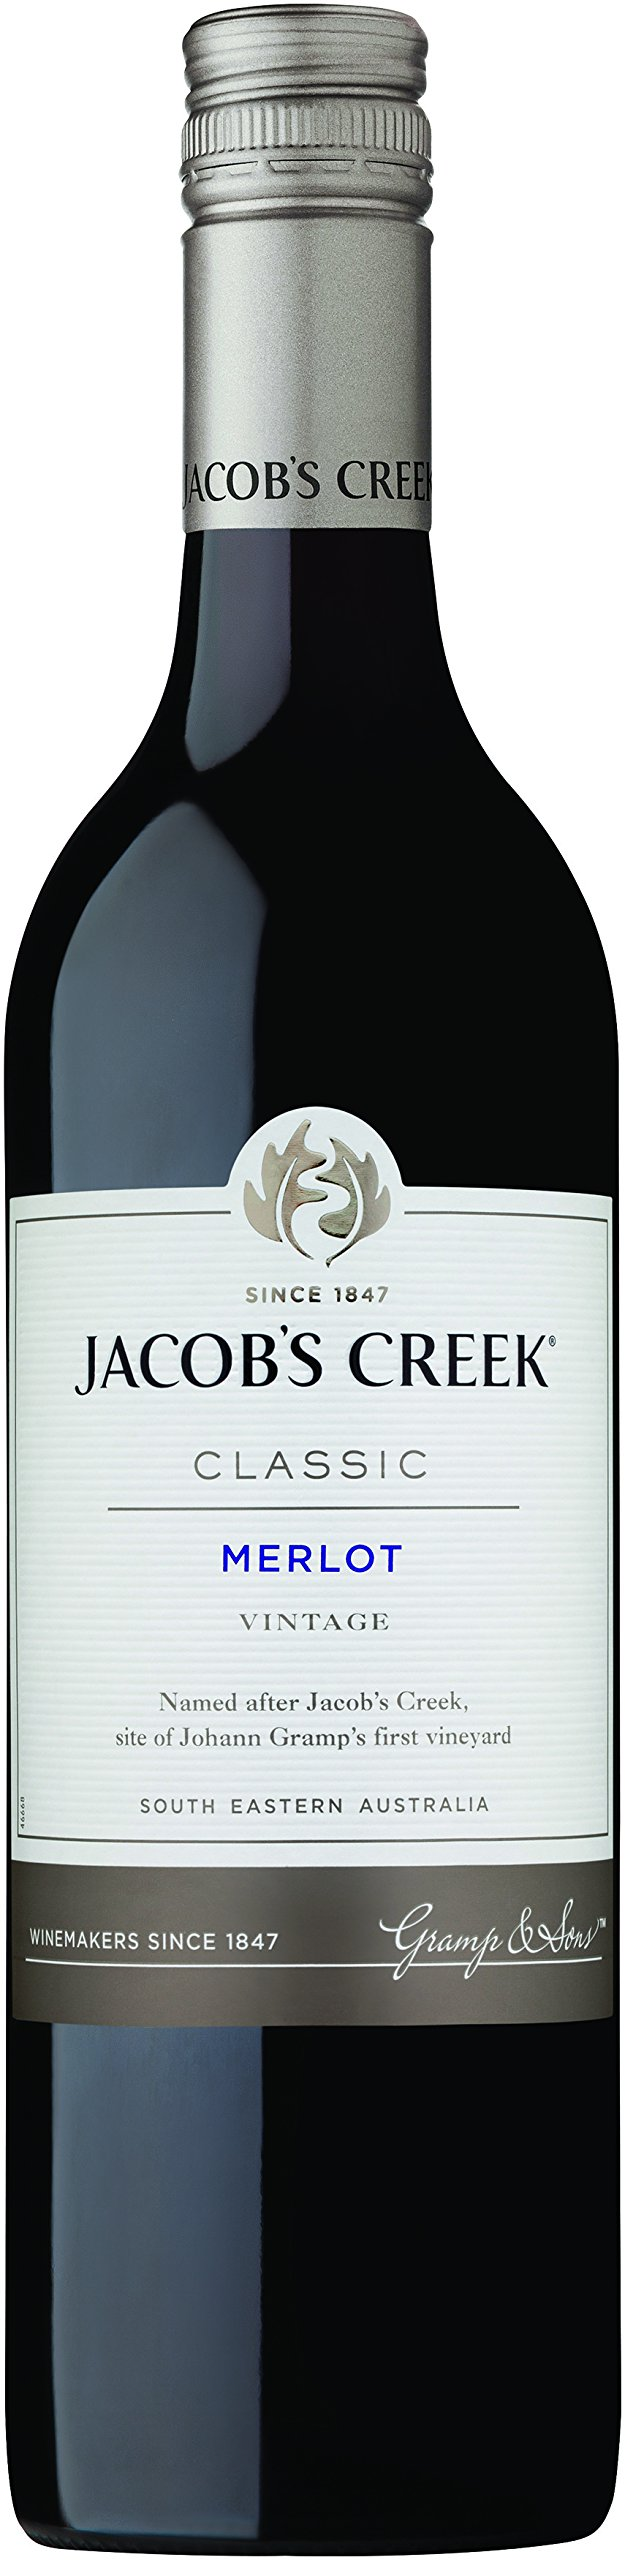 6x-JACOBS-CREEK-MERLOT-075L-Incl-Goodie-von-Flensburger-Handel